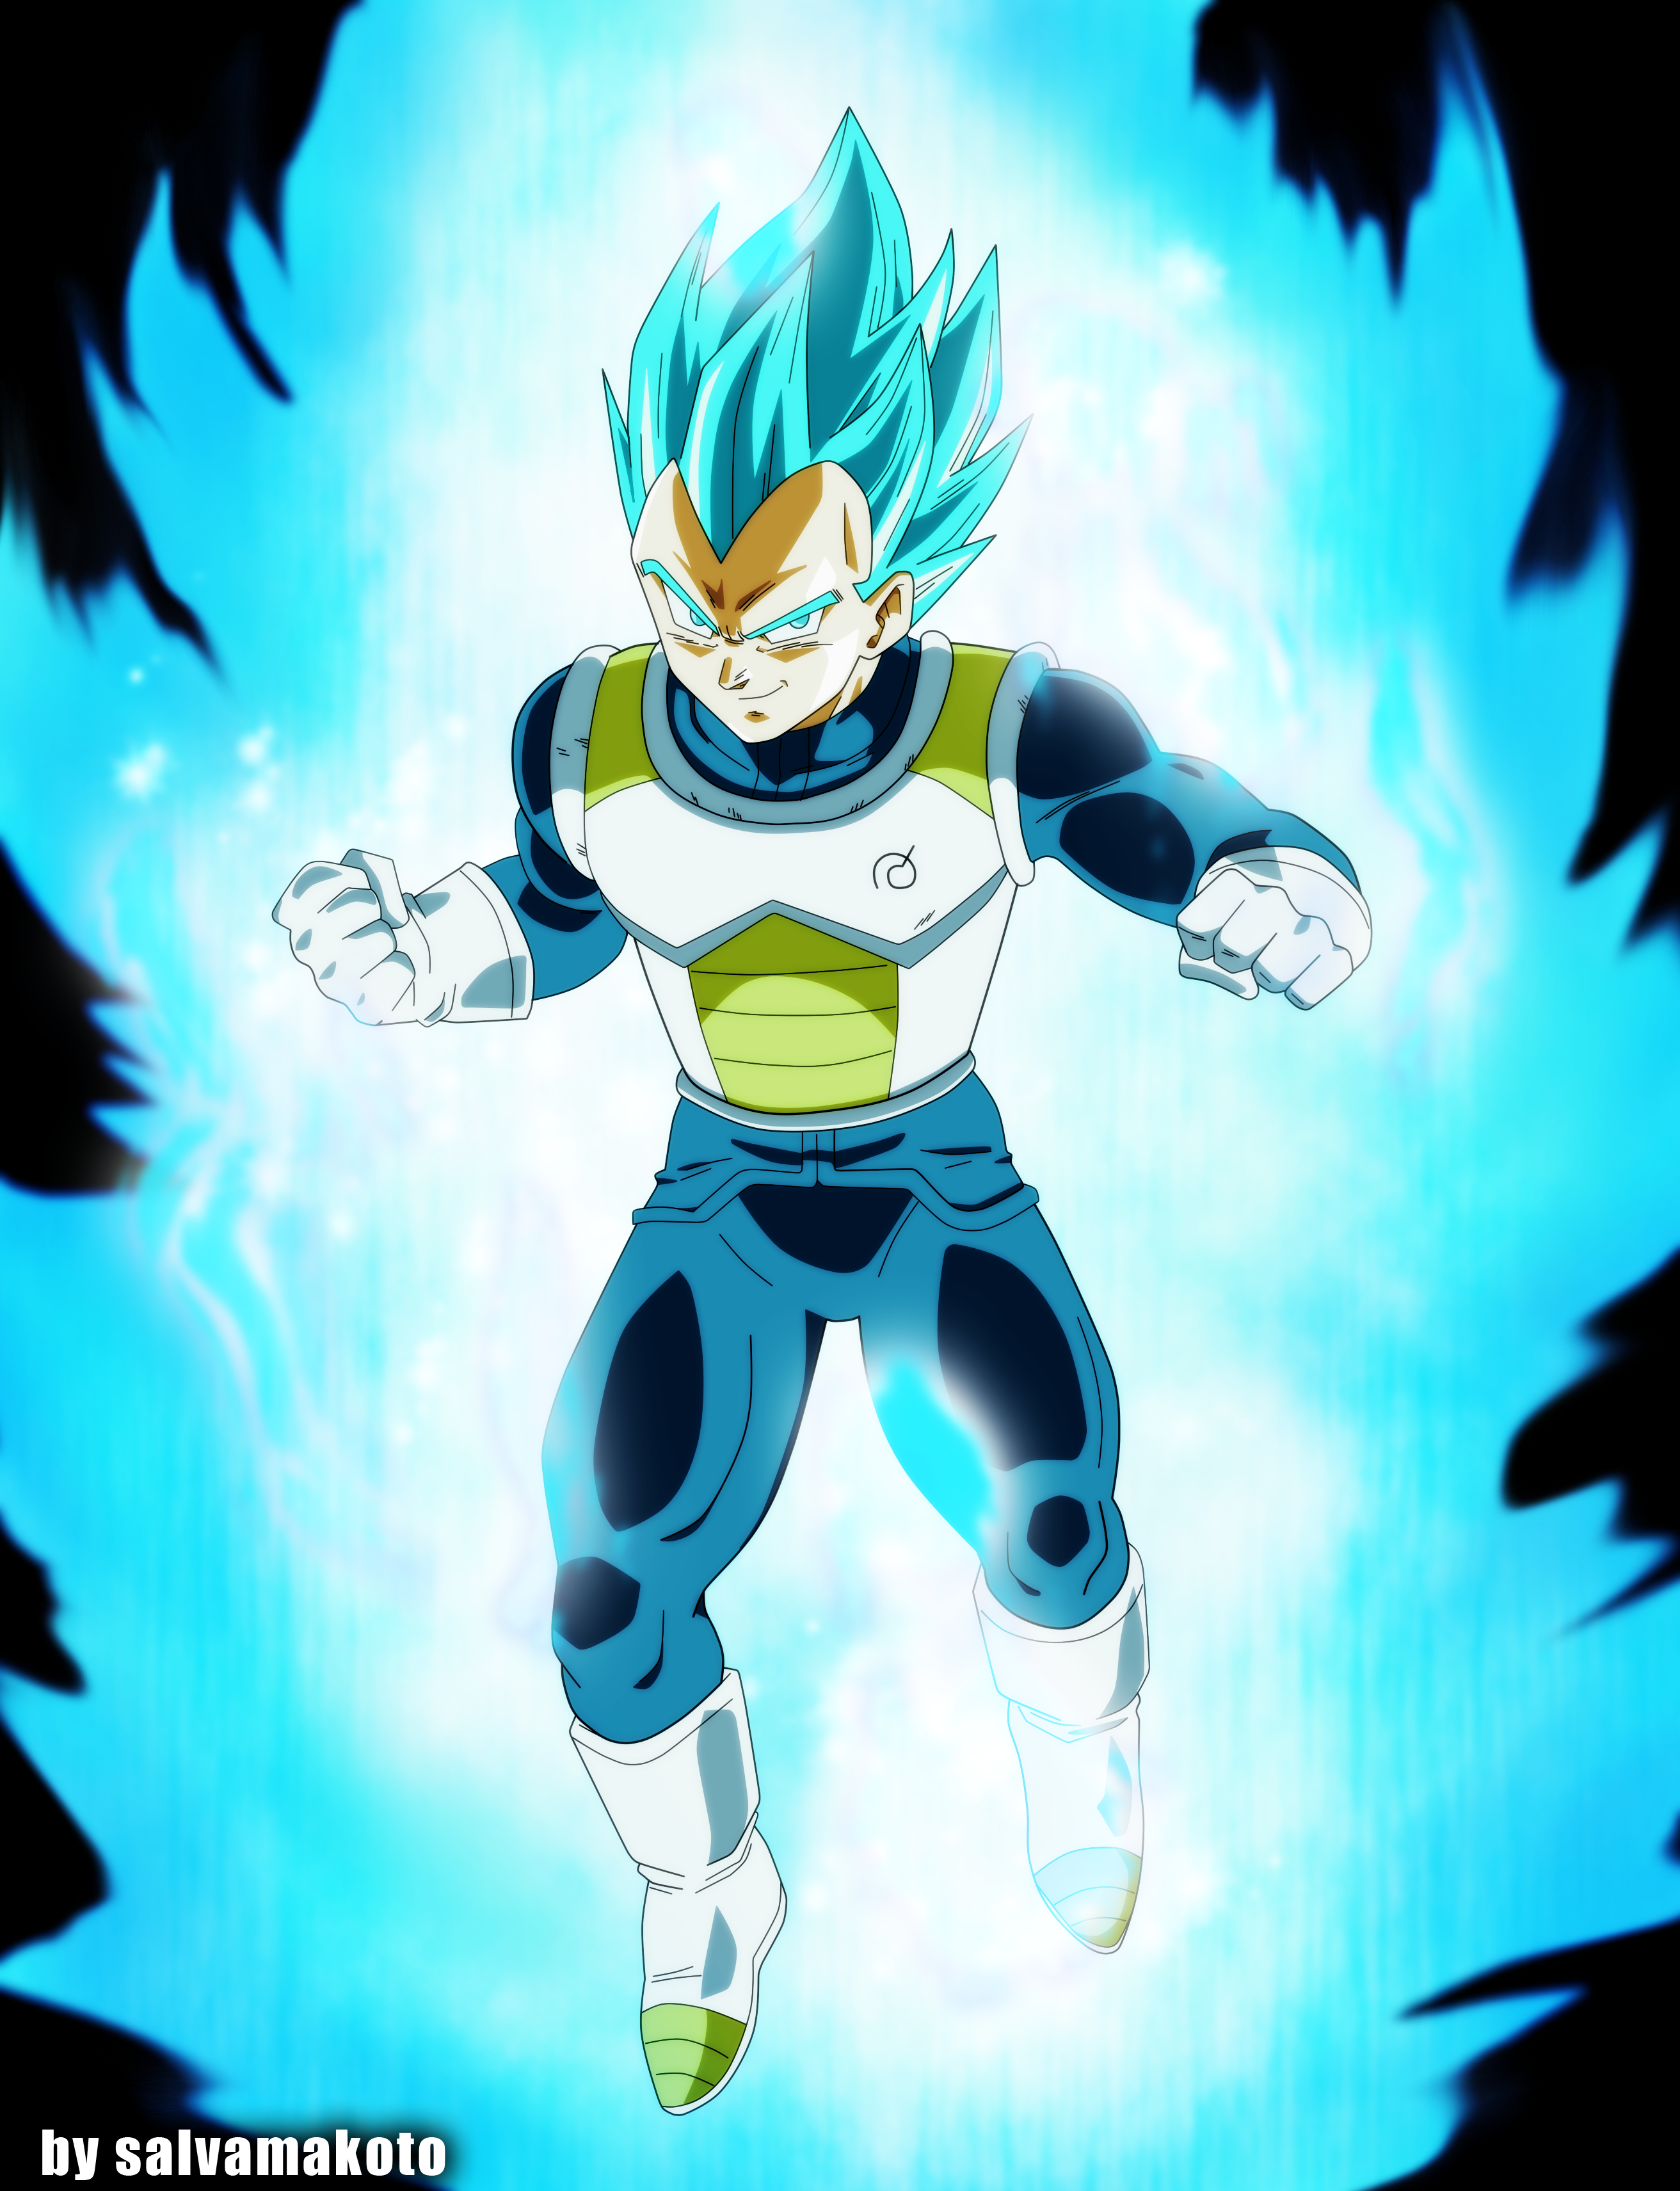 Vegeta dragonball super by salvamakoto on deviantart - Goku vs vegeta super saiyan 5 ...